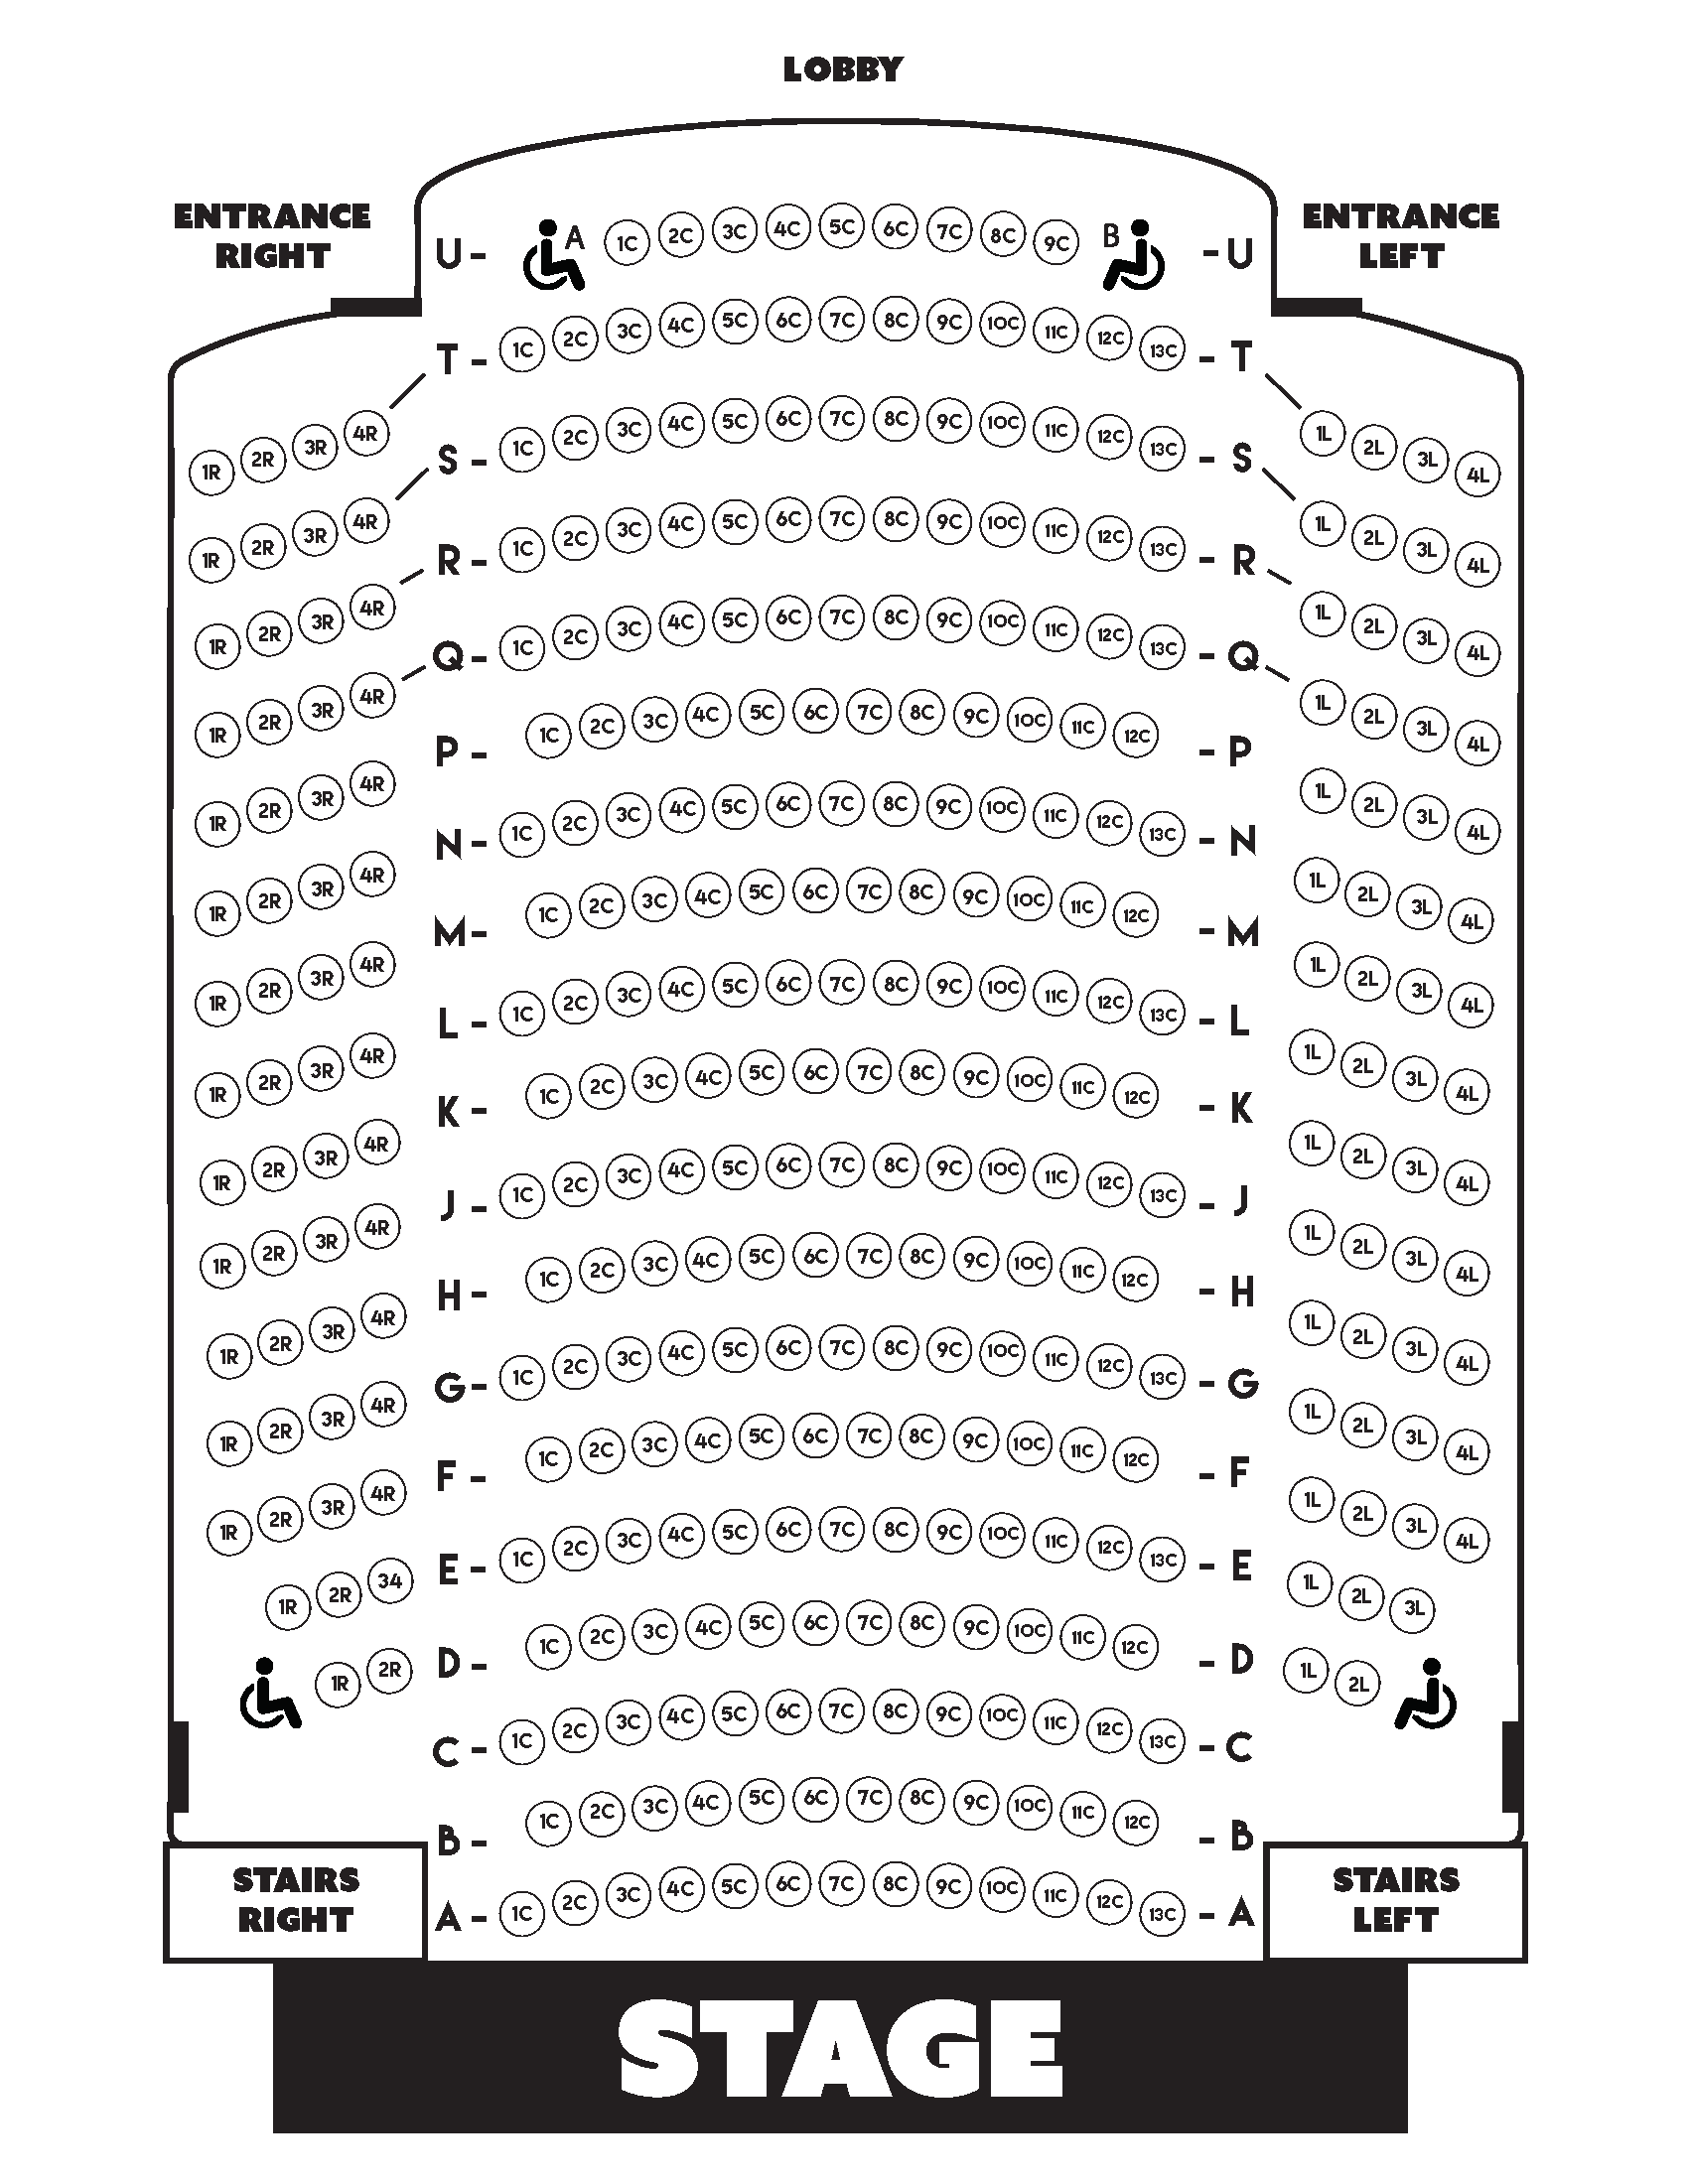 OFFICIAL SEATING CHART